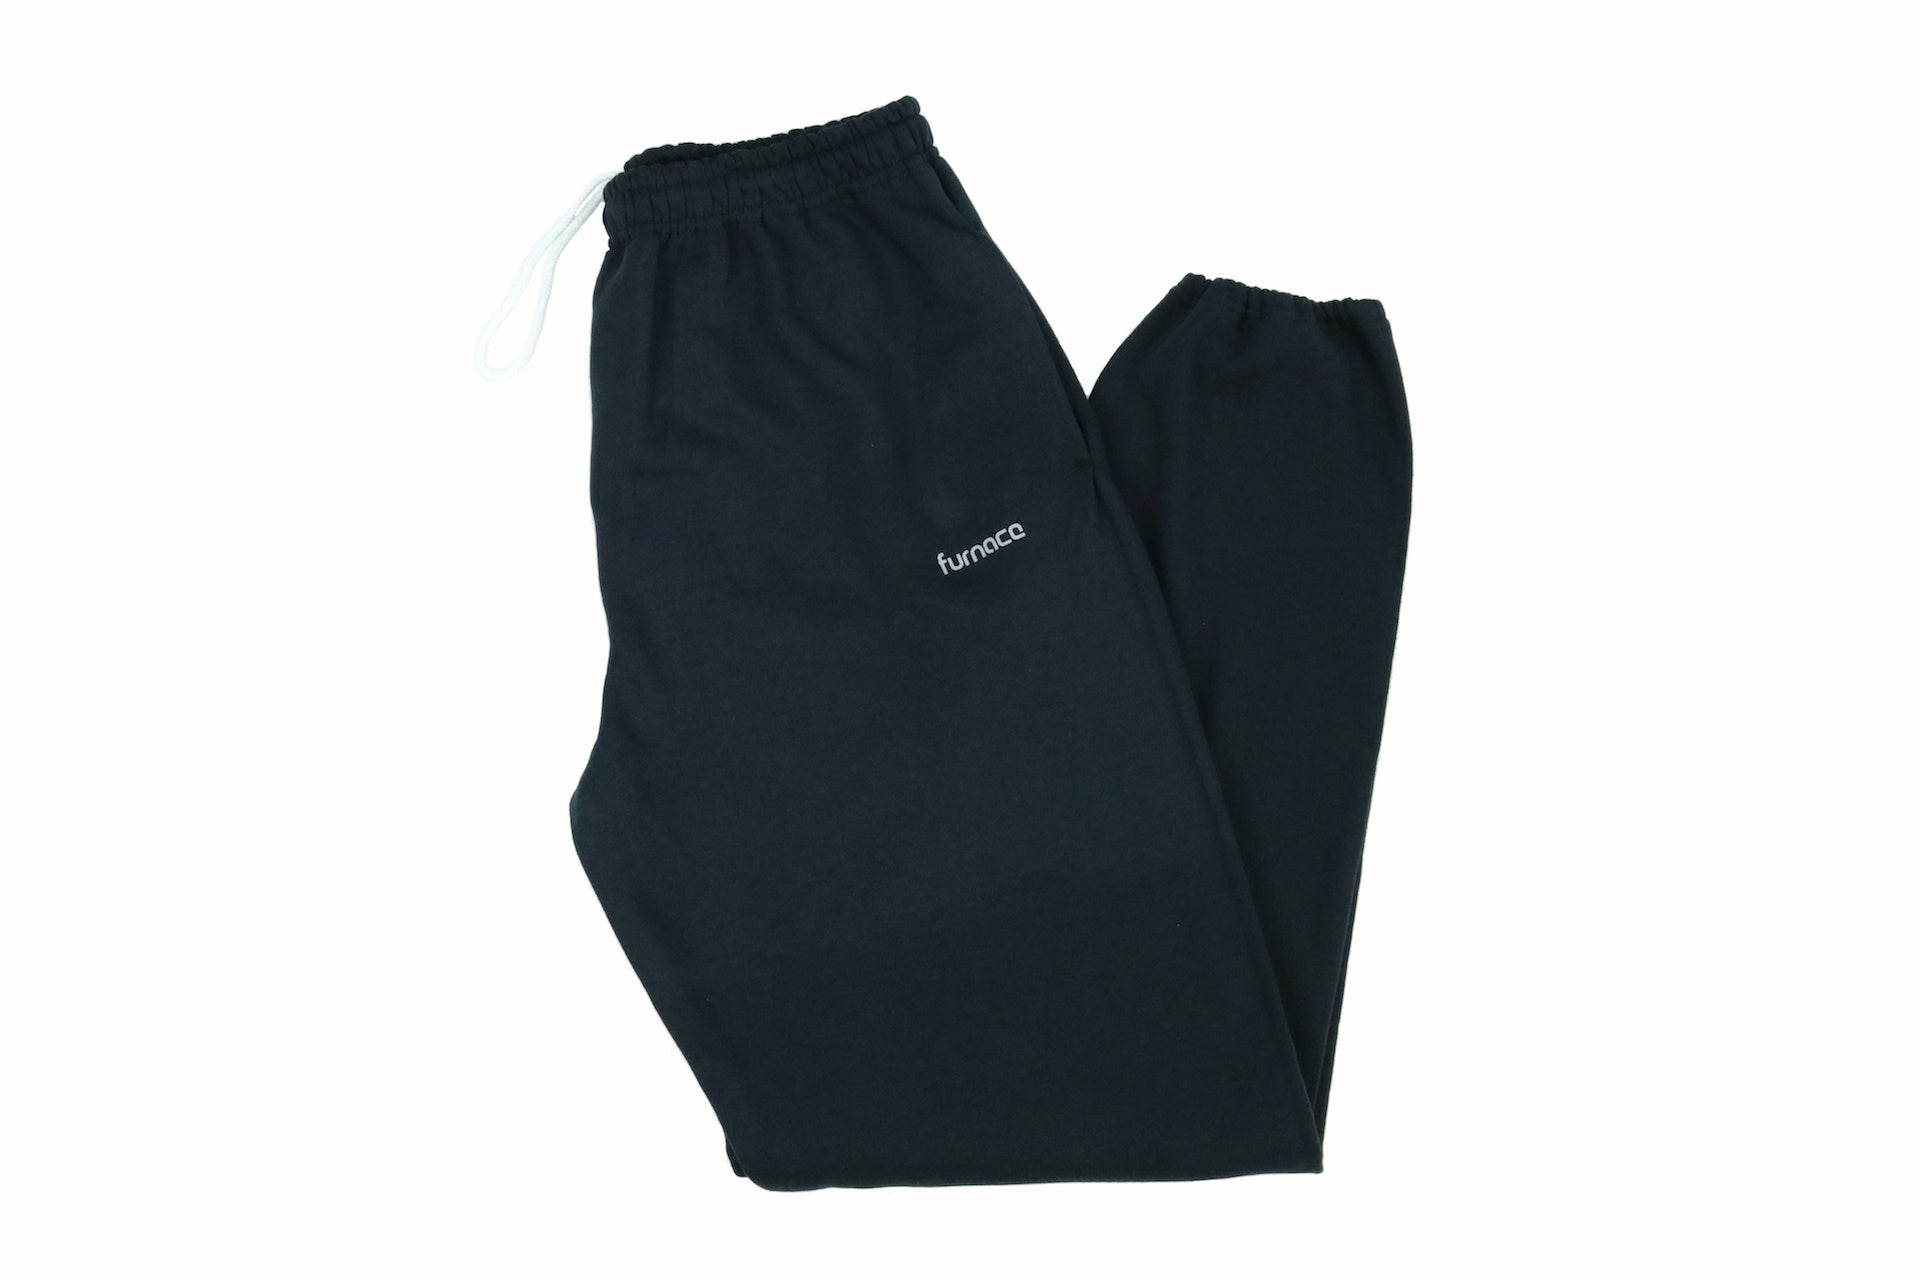 Nuevo Box Car Sweatpants (Reflective)